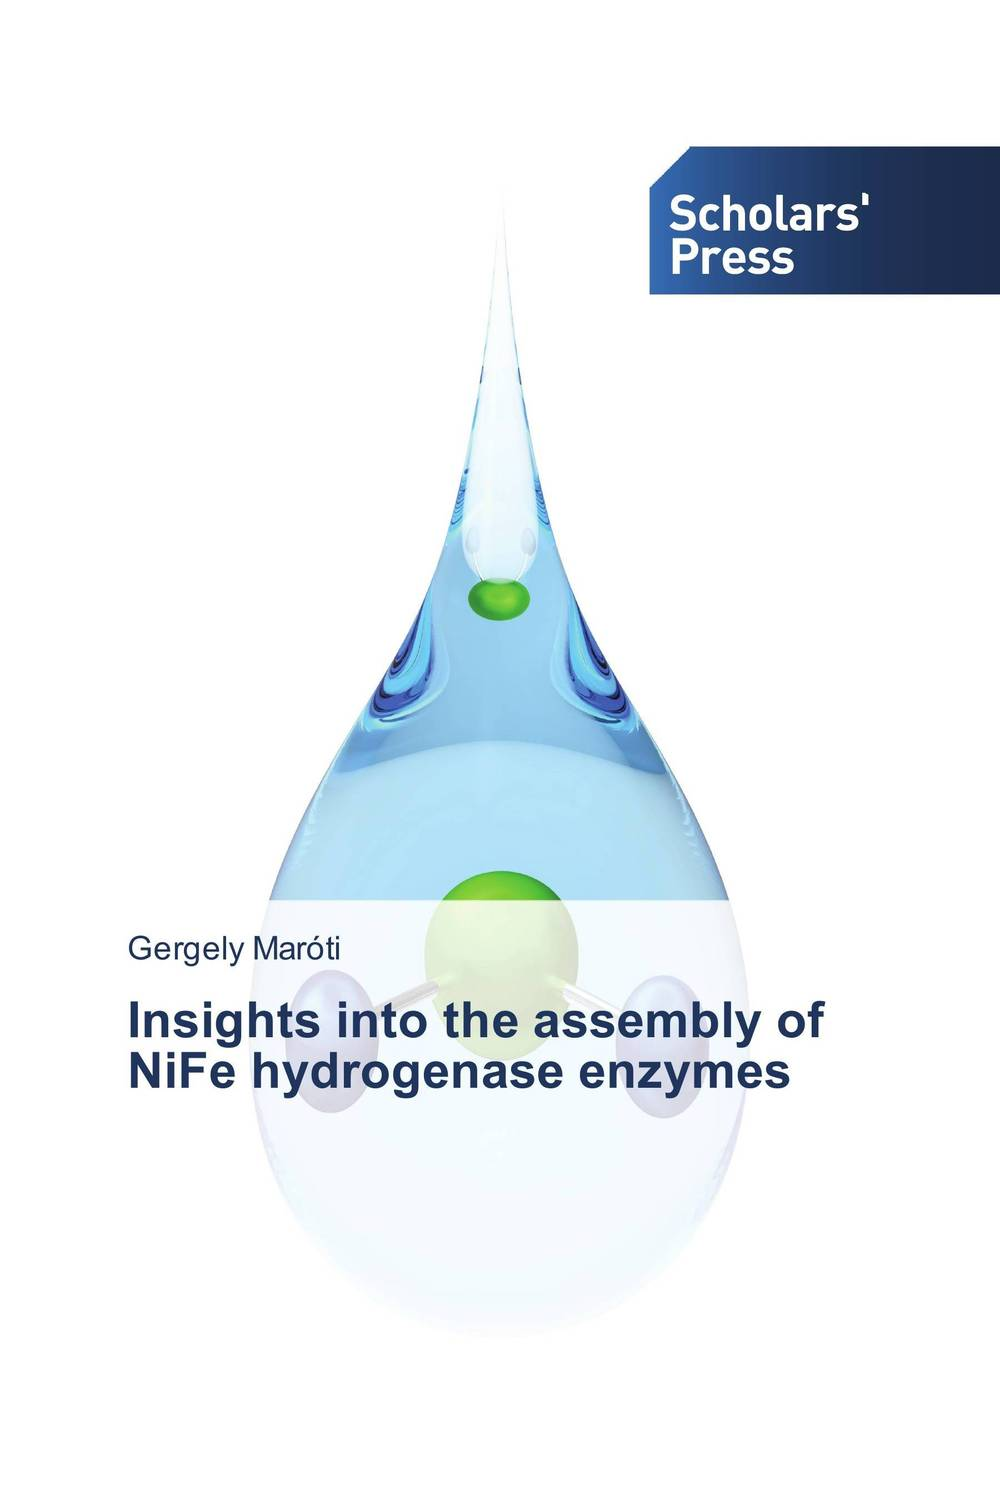 Insights into the assembly of NiFe hydrogenase enzymes molecular hydrogen magie